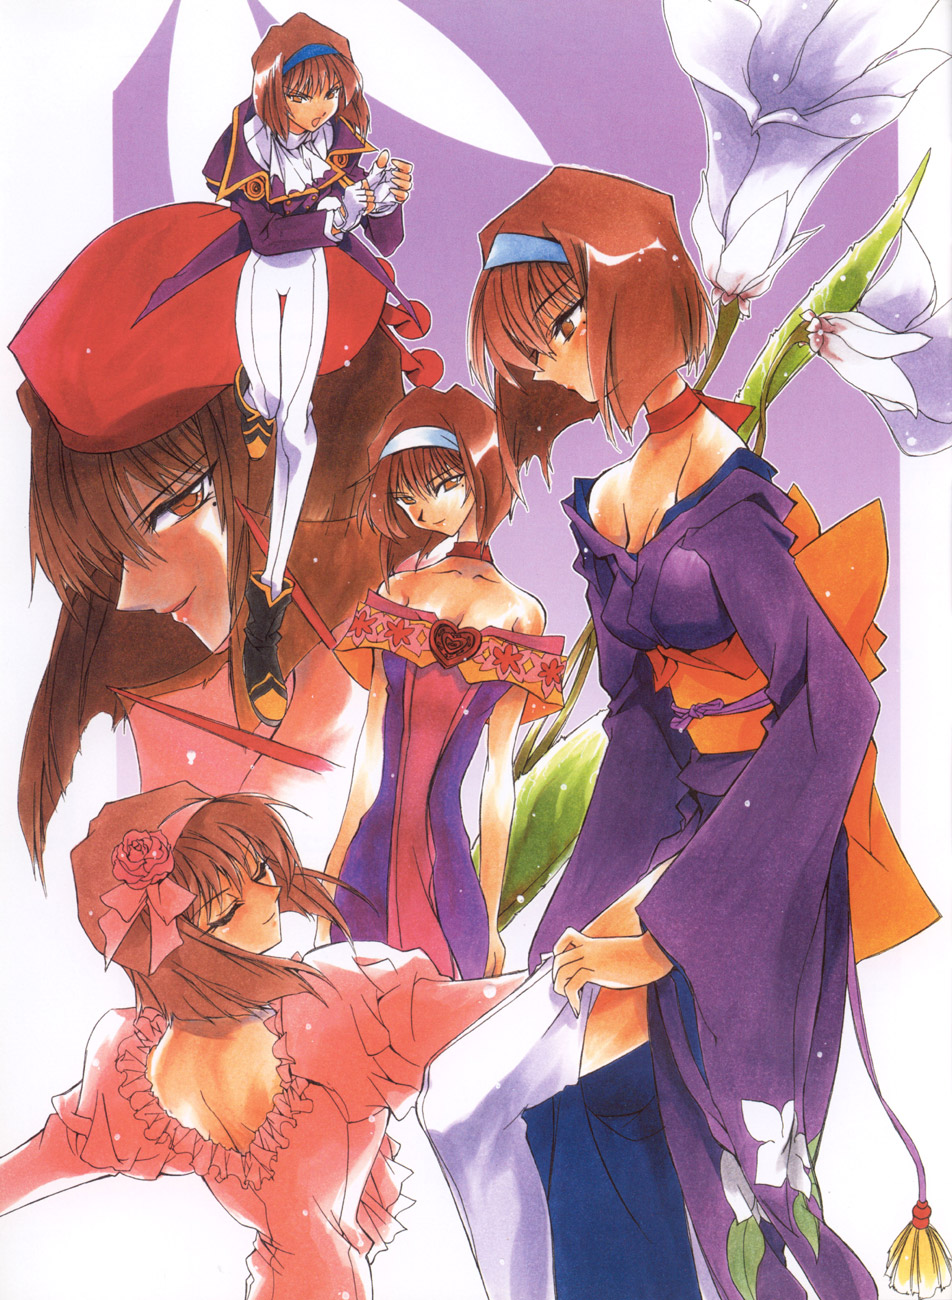 Sakura Wars illustrations: the Origin + Tribute image by Ogawa Masashi